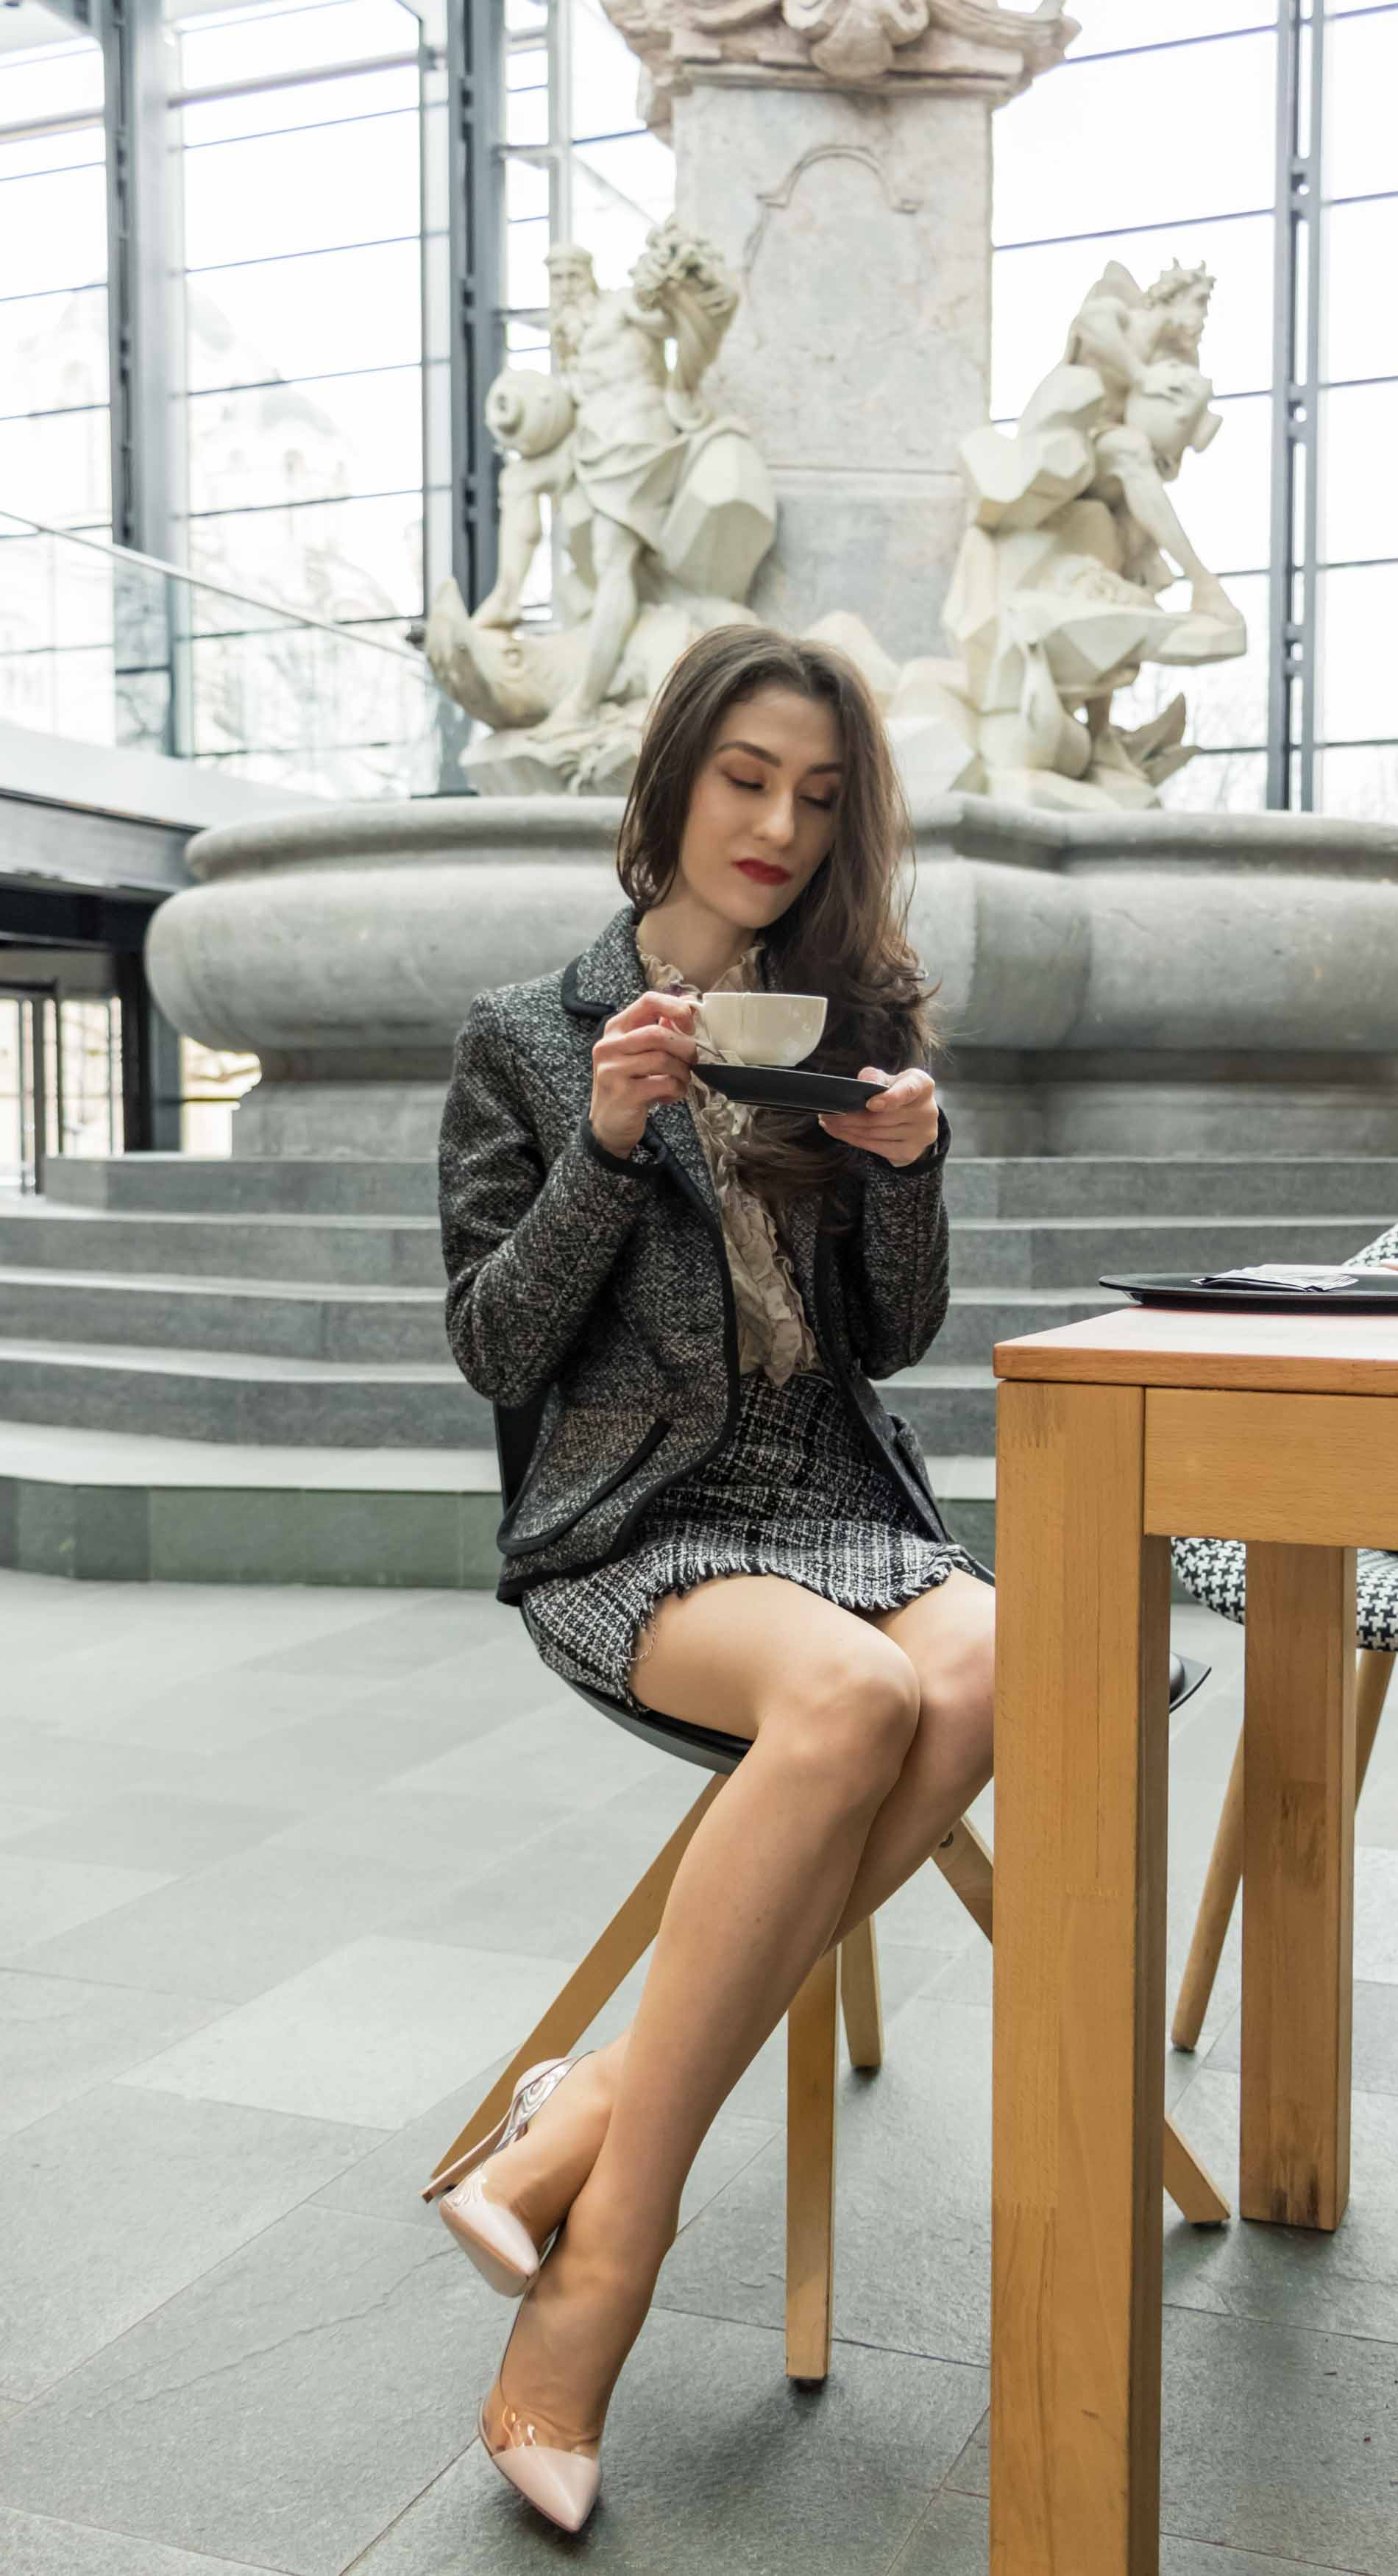 Fashion Blogger Veronika Lipar of Brunette from Wall Street wearing blush Gianvito Rossi Plexi 100 leather and PVC pumps, tweed plaid mini skirt from Storets, black and white Marella tweed jacket while drinking coffee